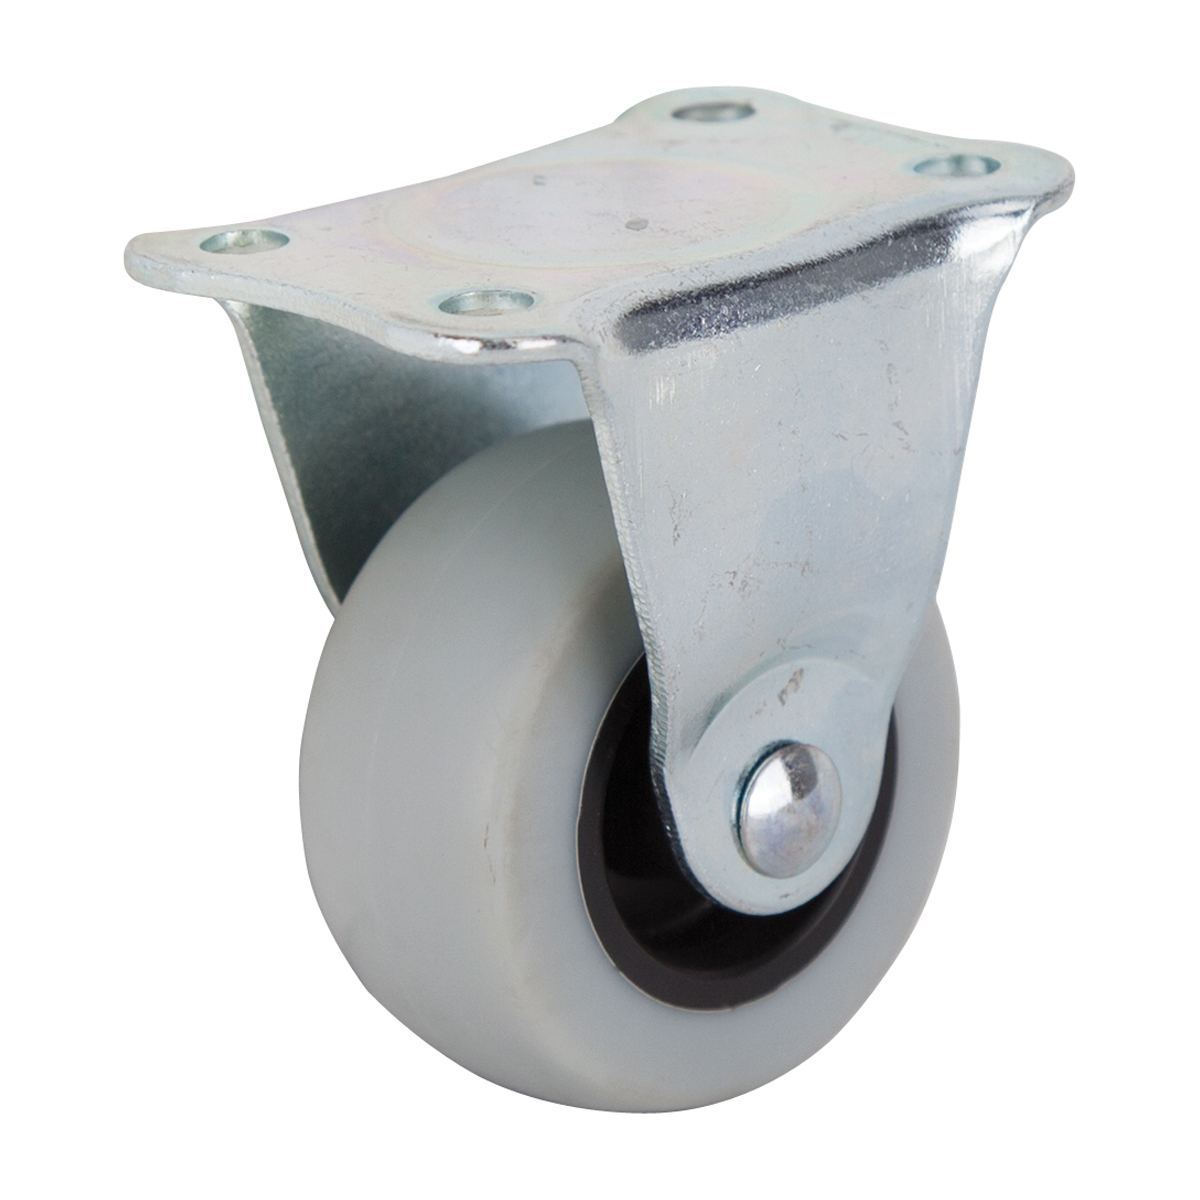 Picture of ProSource JC-N01-G Rigid Caster with Brake, 2 in Dia Wheel, Thermoplastic Rubber Wheel, Gray, 105 lb